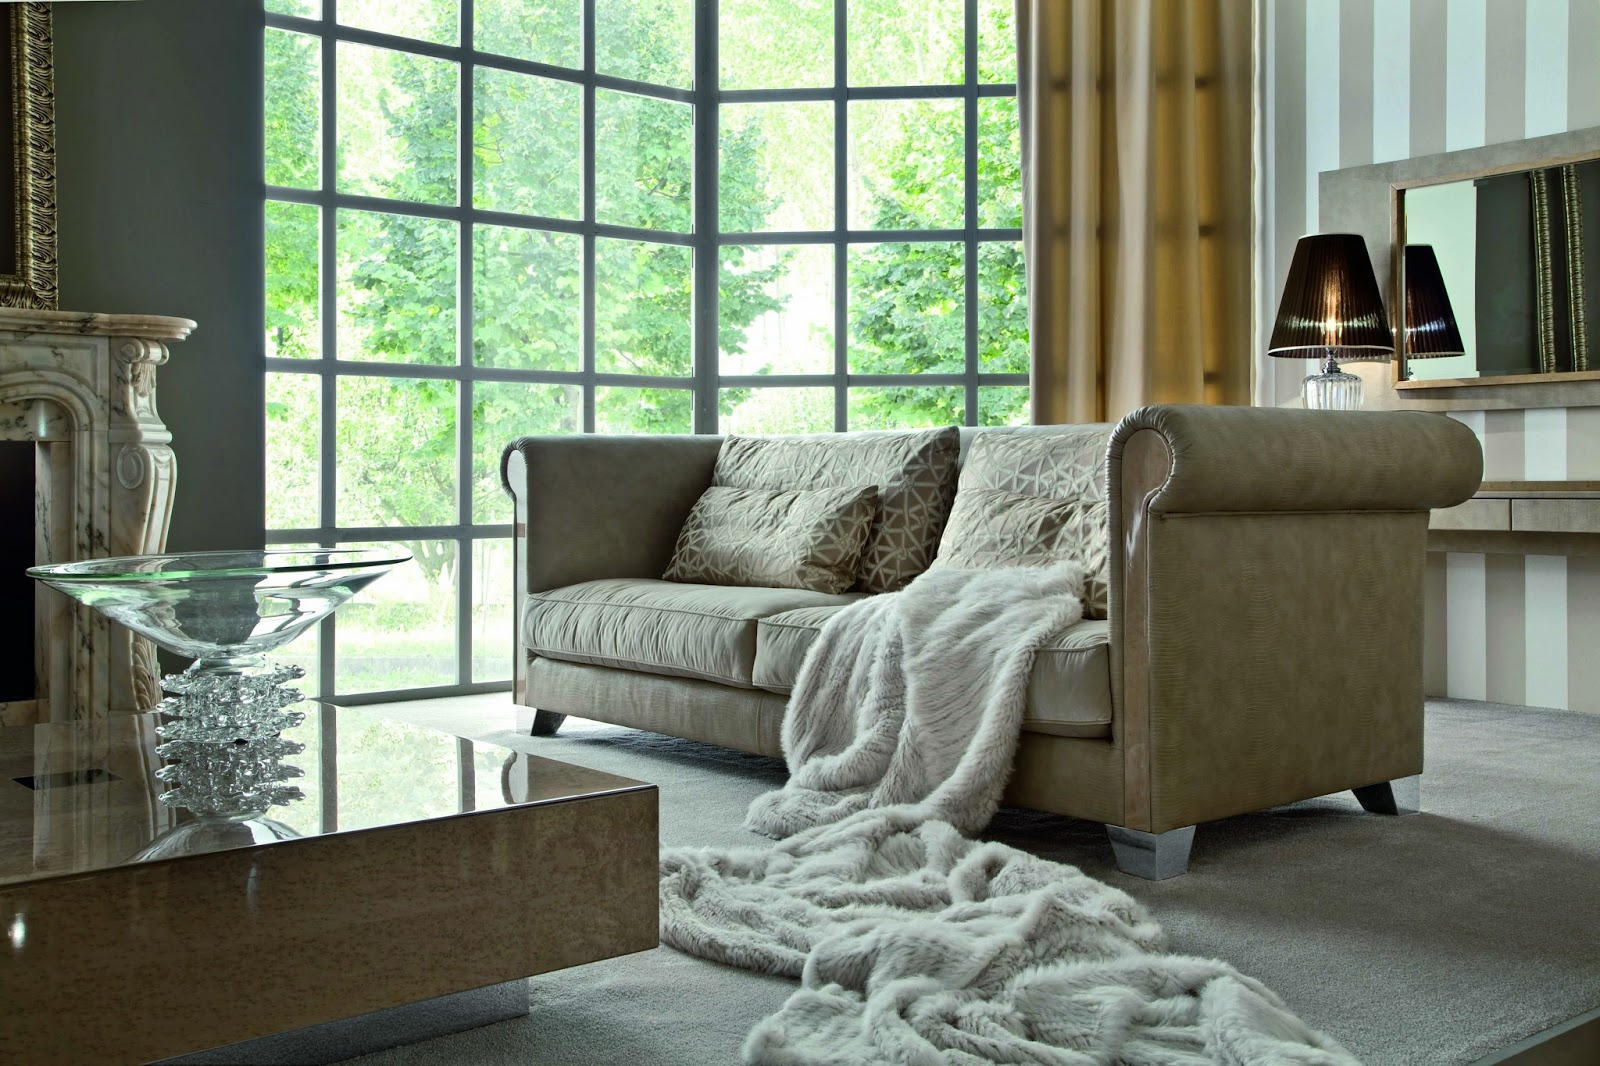 Home house & components rooms living room maximize your space and master your aesthetic with our living room designs, furniture and accessories. Modern Furniture: 2013 Modern Living Room Sofas Furniture ...